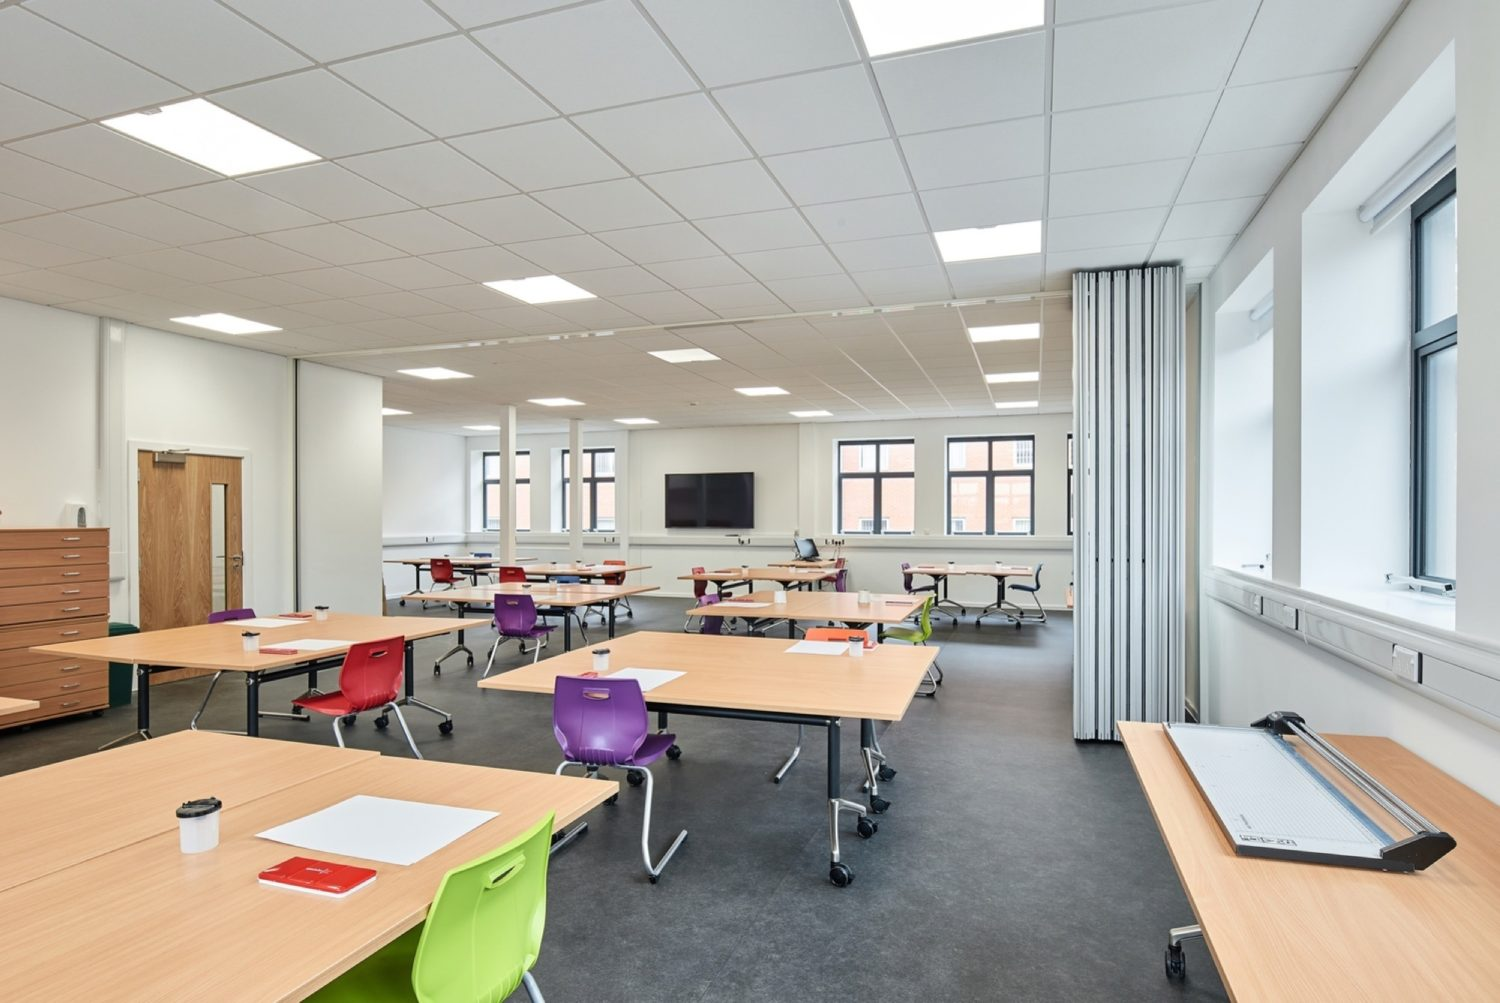 Stratford classroom with adjustable walls